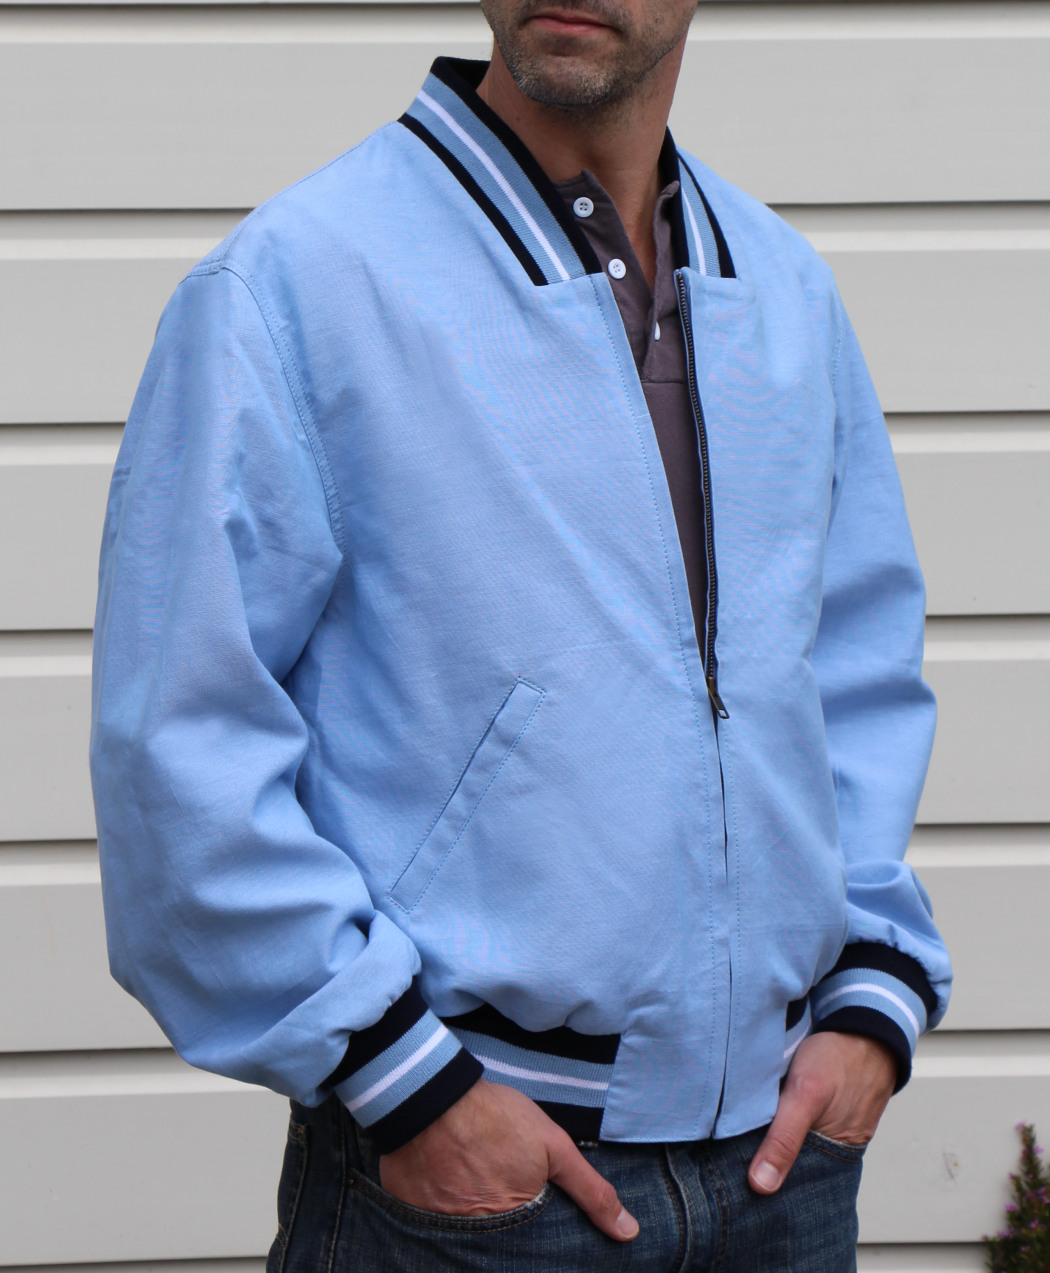 Chambray Jacket Large (Overstock)